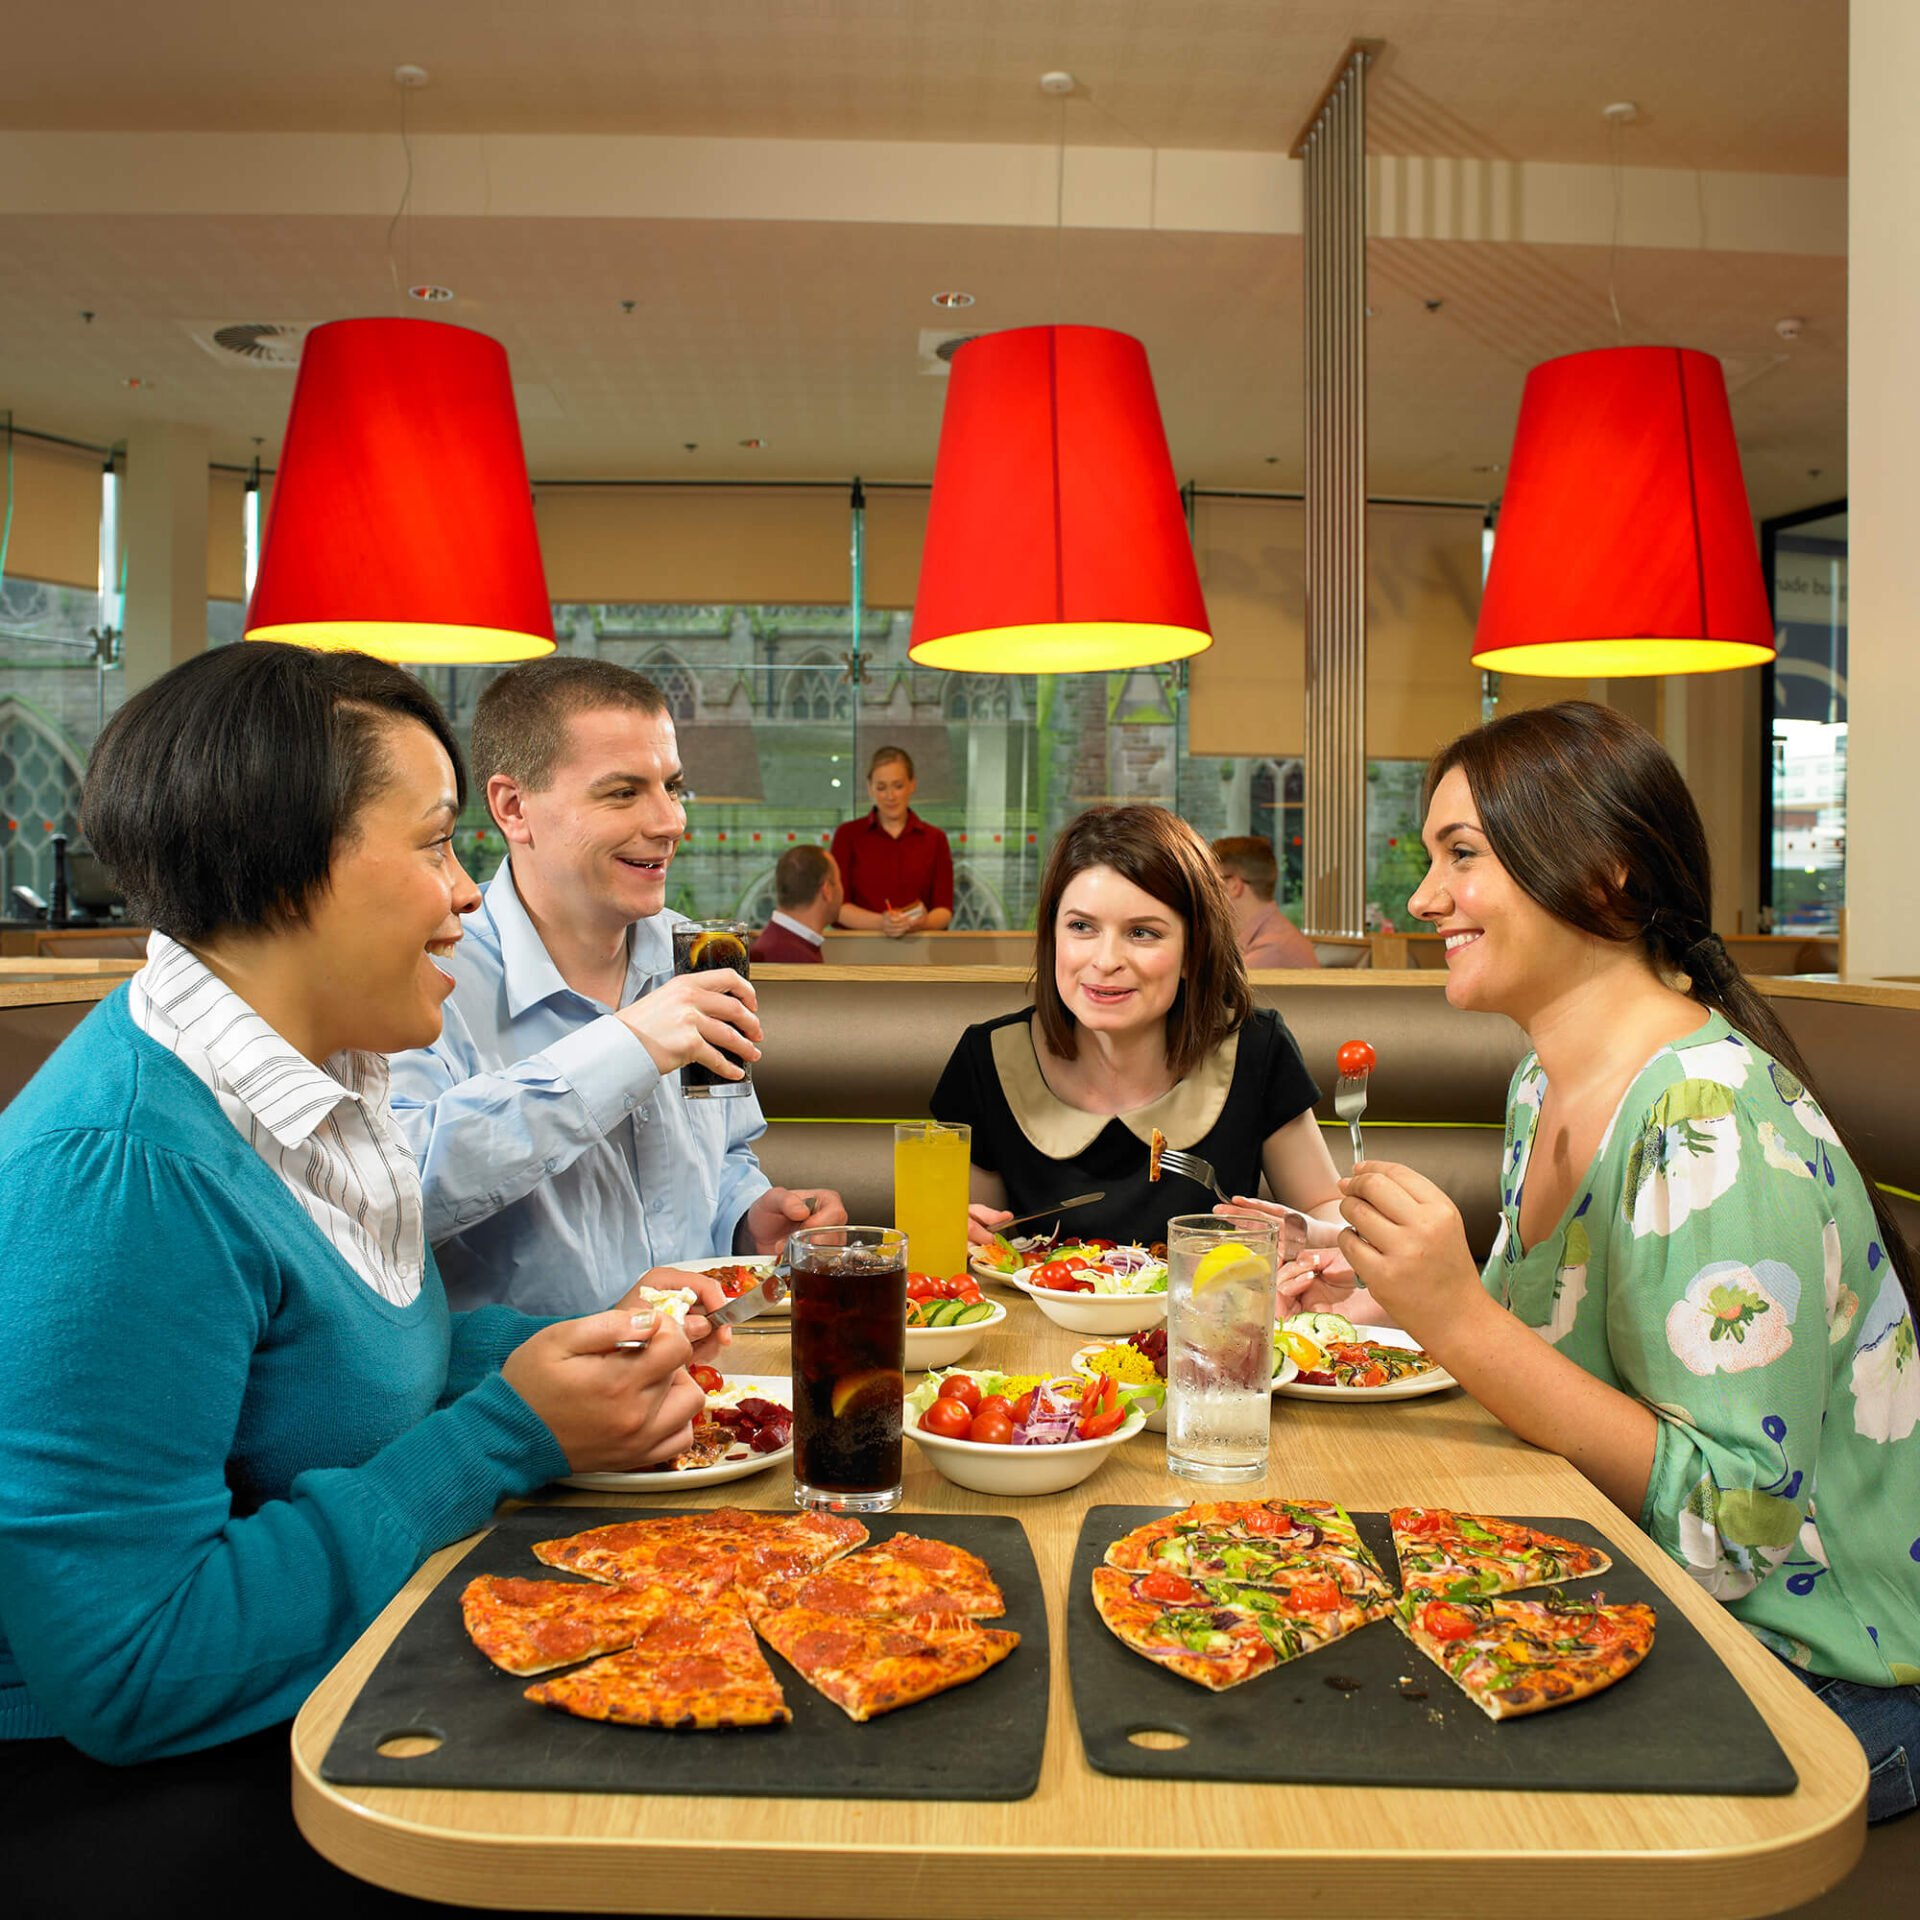 Pizza Hut Lifestyle Photography